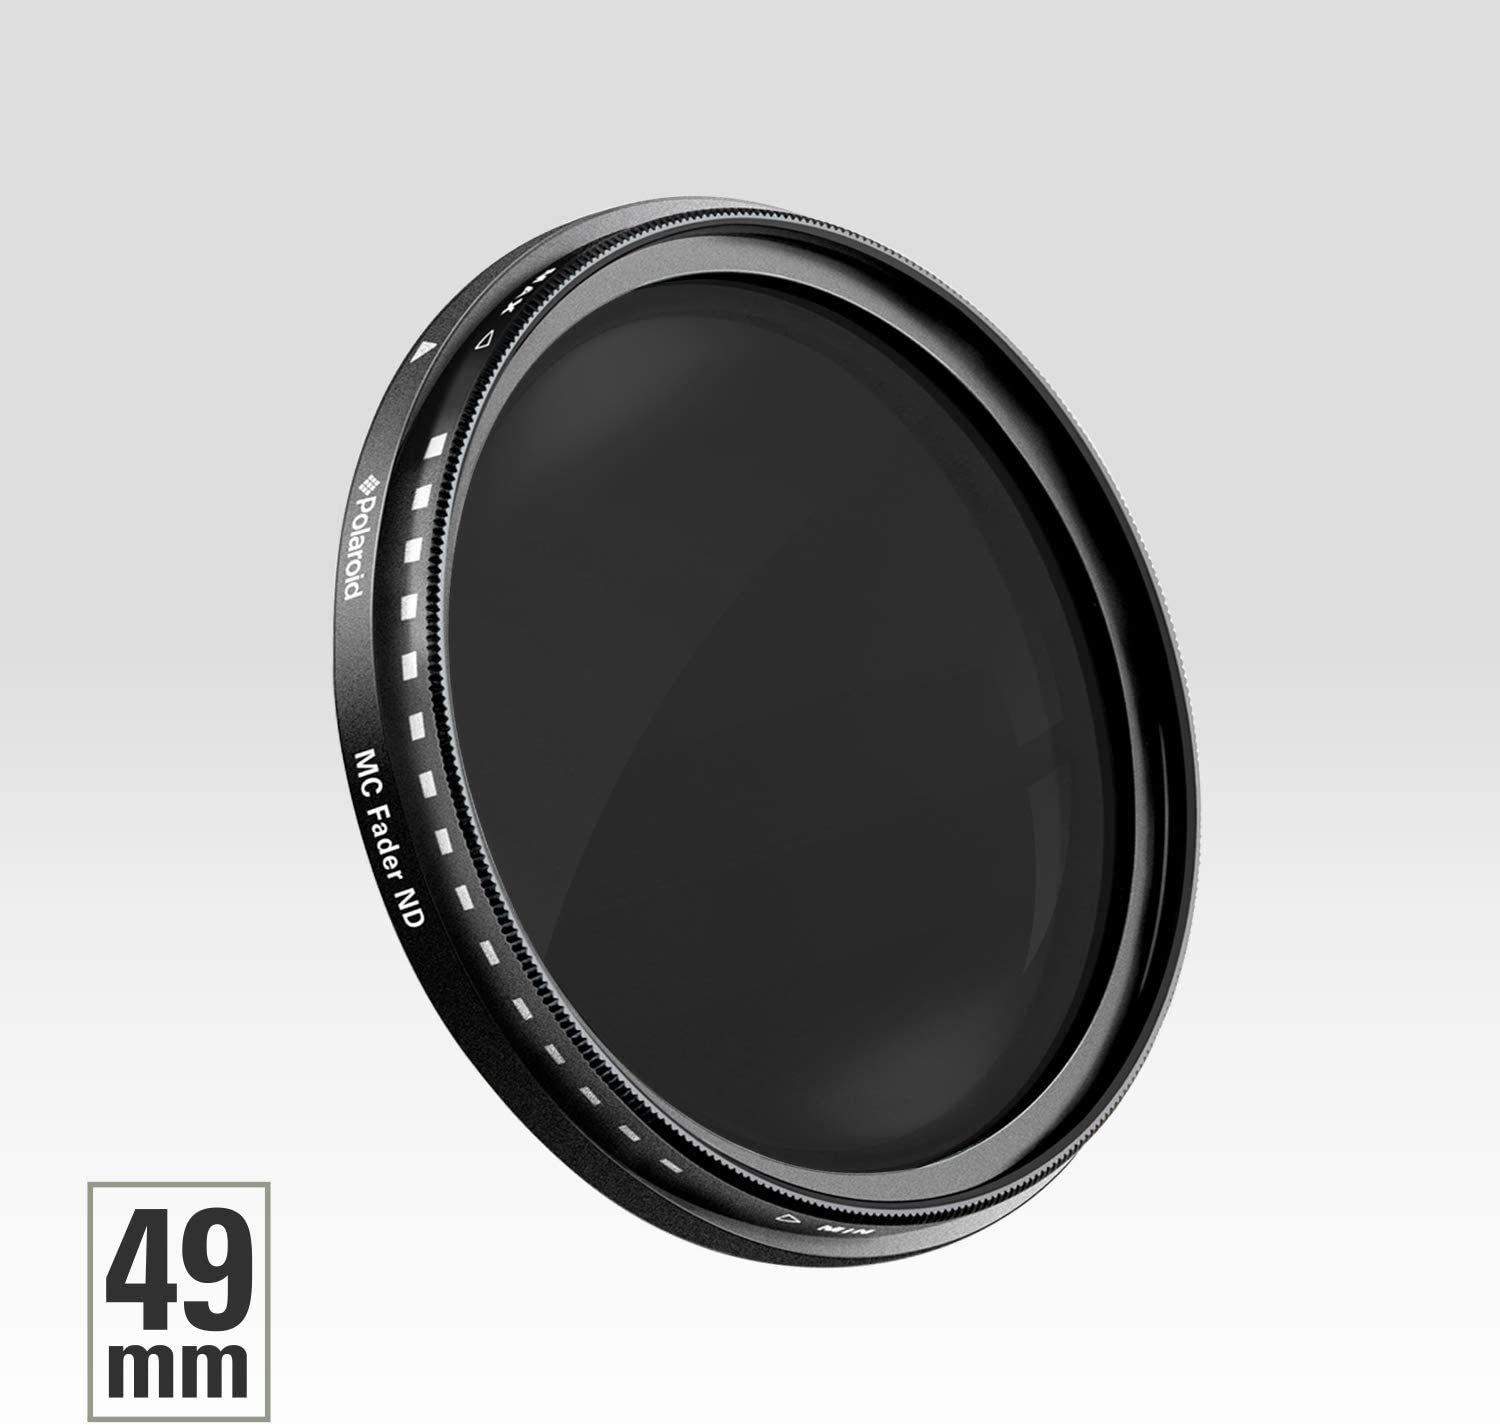 Neutral Density Fader Filter ND2-ND2000 Polaroid Optics 58mm Multi-Coated Variable Range Compatible w// All Popular Camera Lens Models ND3, ND6, ND9, ND16, ND32, ND400